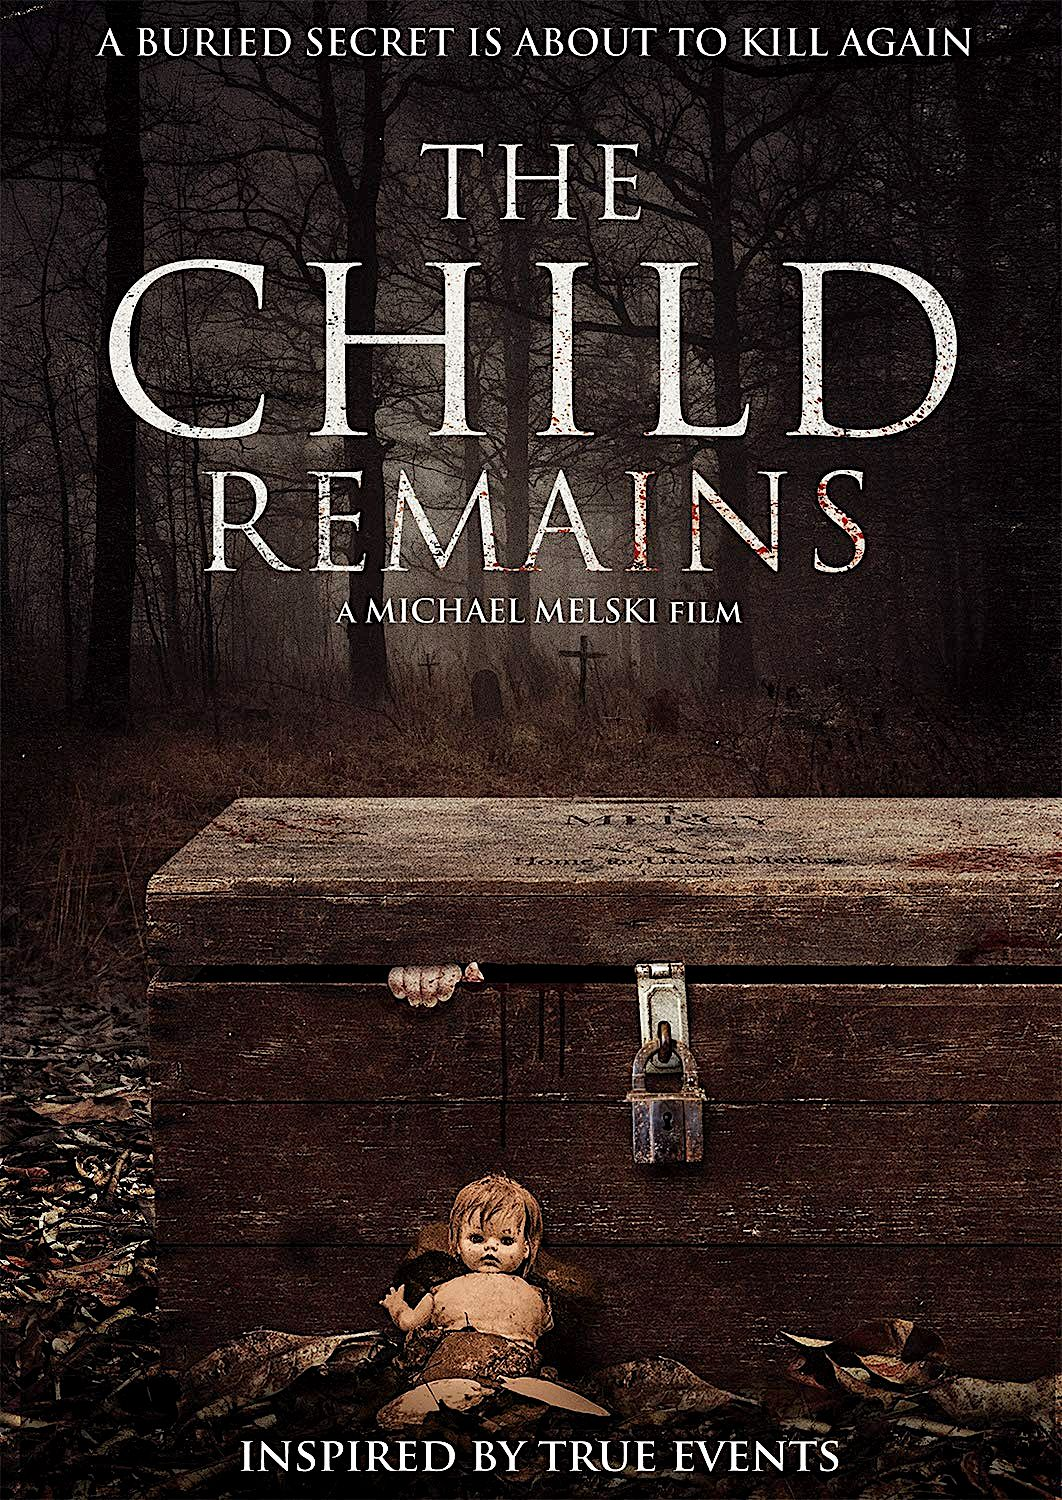 THE CHILD REMAINS DVD (UNCORK'D ENTERTAINMENT)